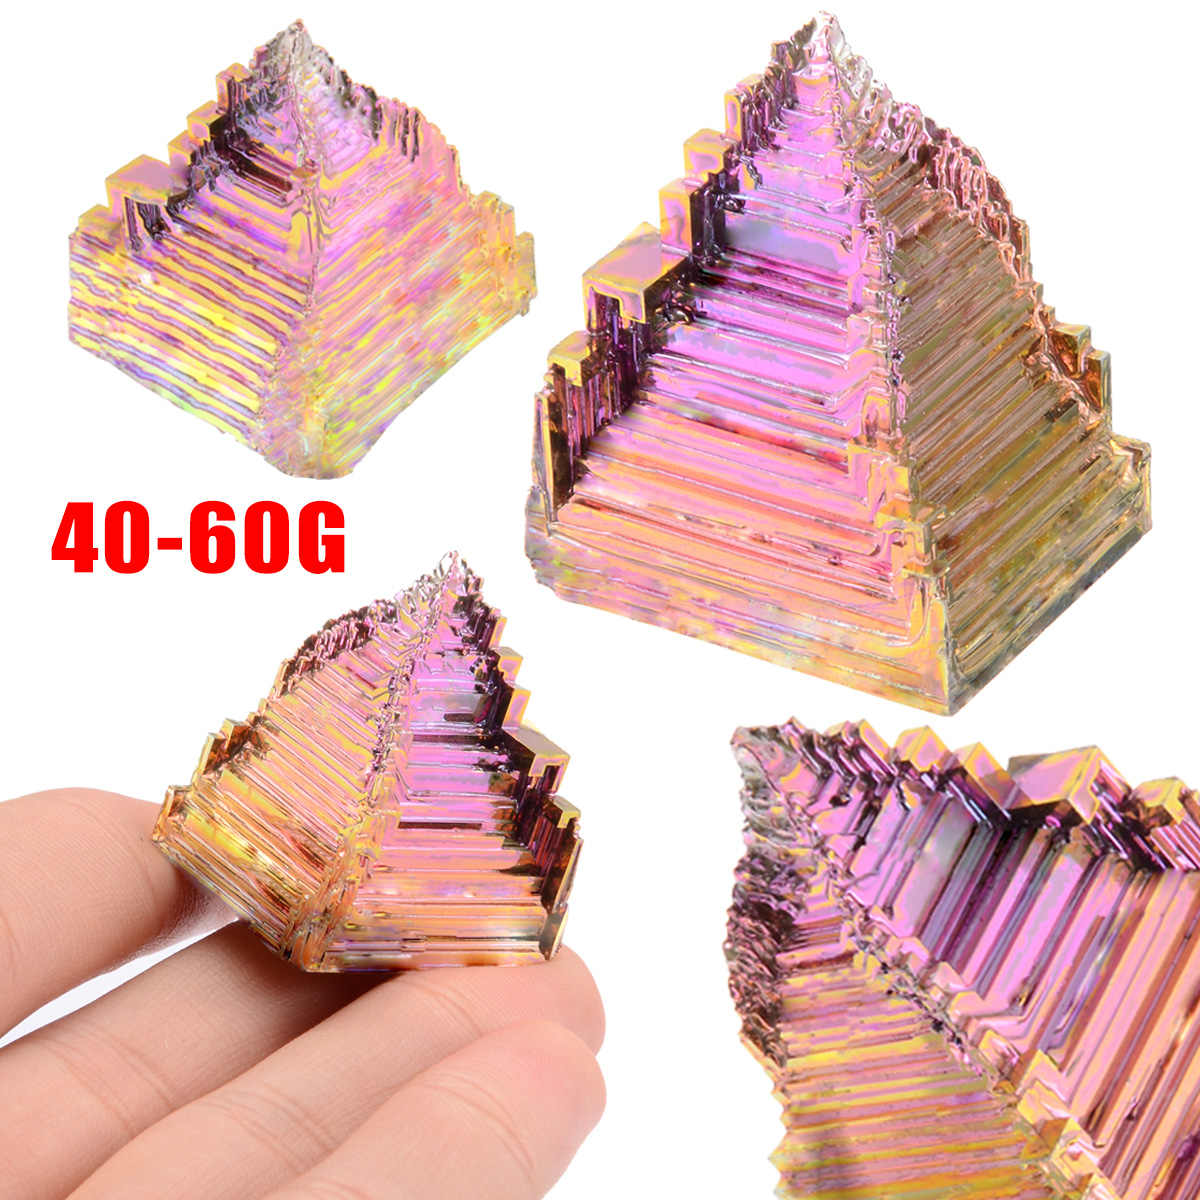 Colorful High Purity Bismuth Crystals 40-60g Bismuth Metal Crystal Specimen For Bismuth Crystals For Home Crafts Tools